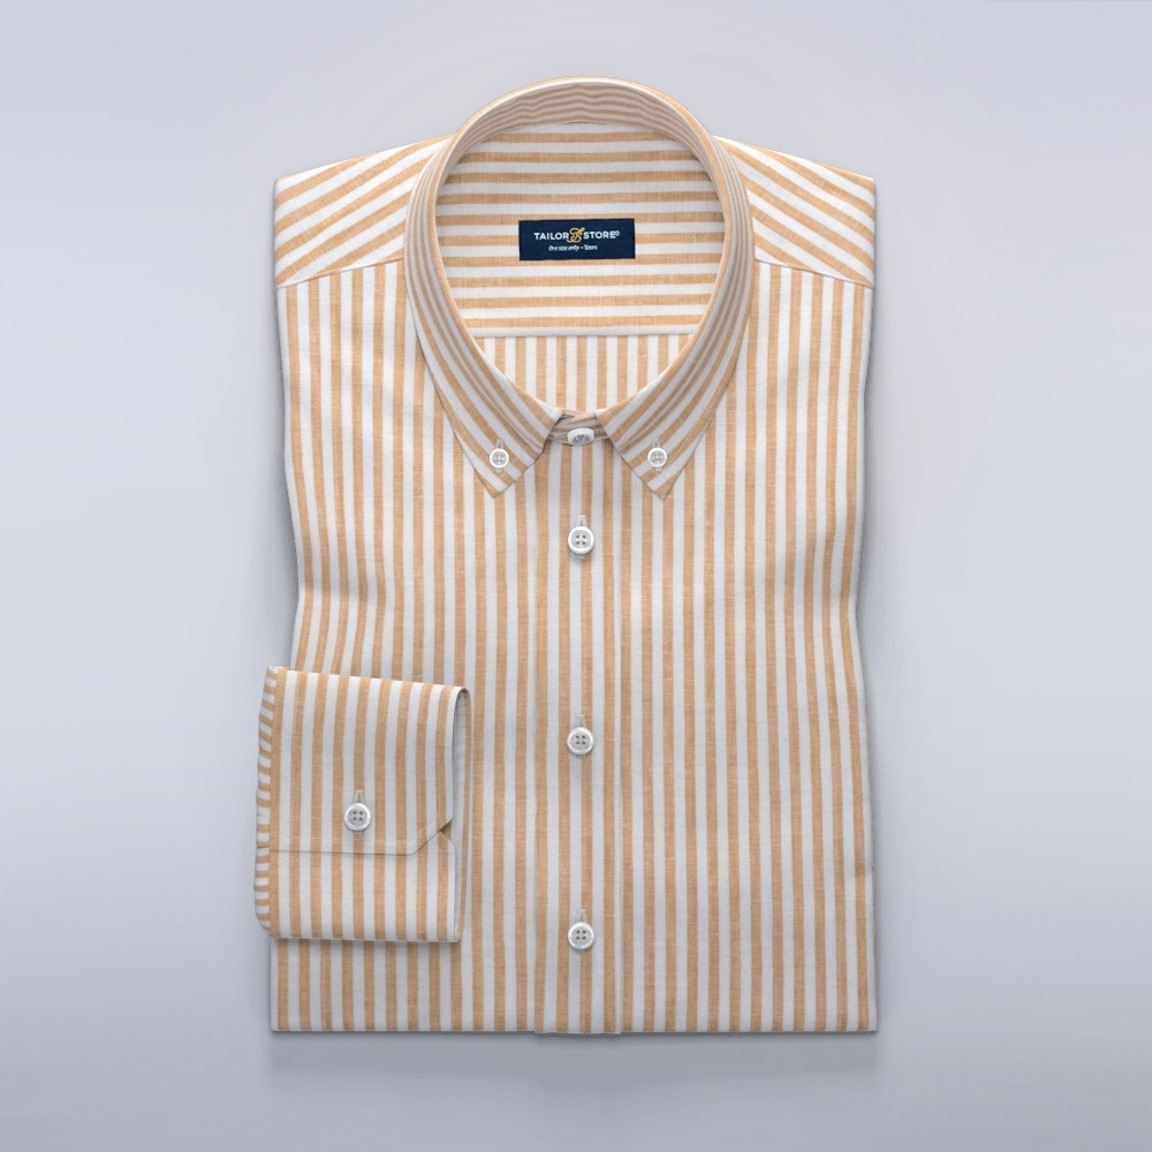 Women's dress shirt in striped white and yellow linen